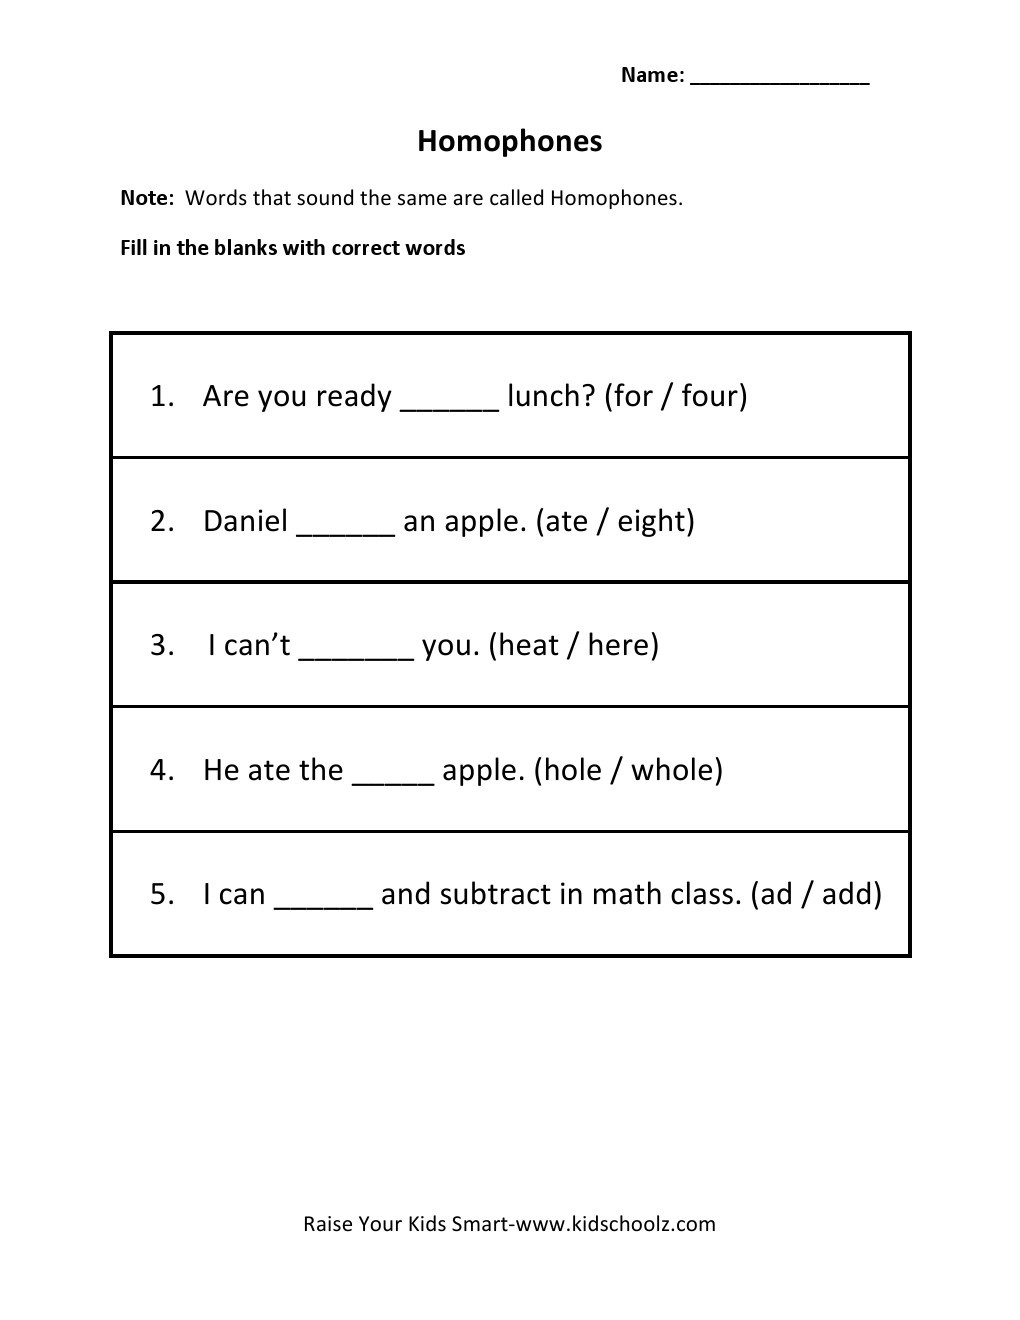 Homophones Worksheets for Grade 5 Grade 3 Homophones Worksheet 3 Kidschoolz